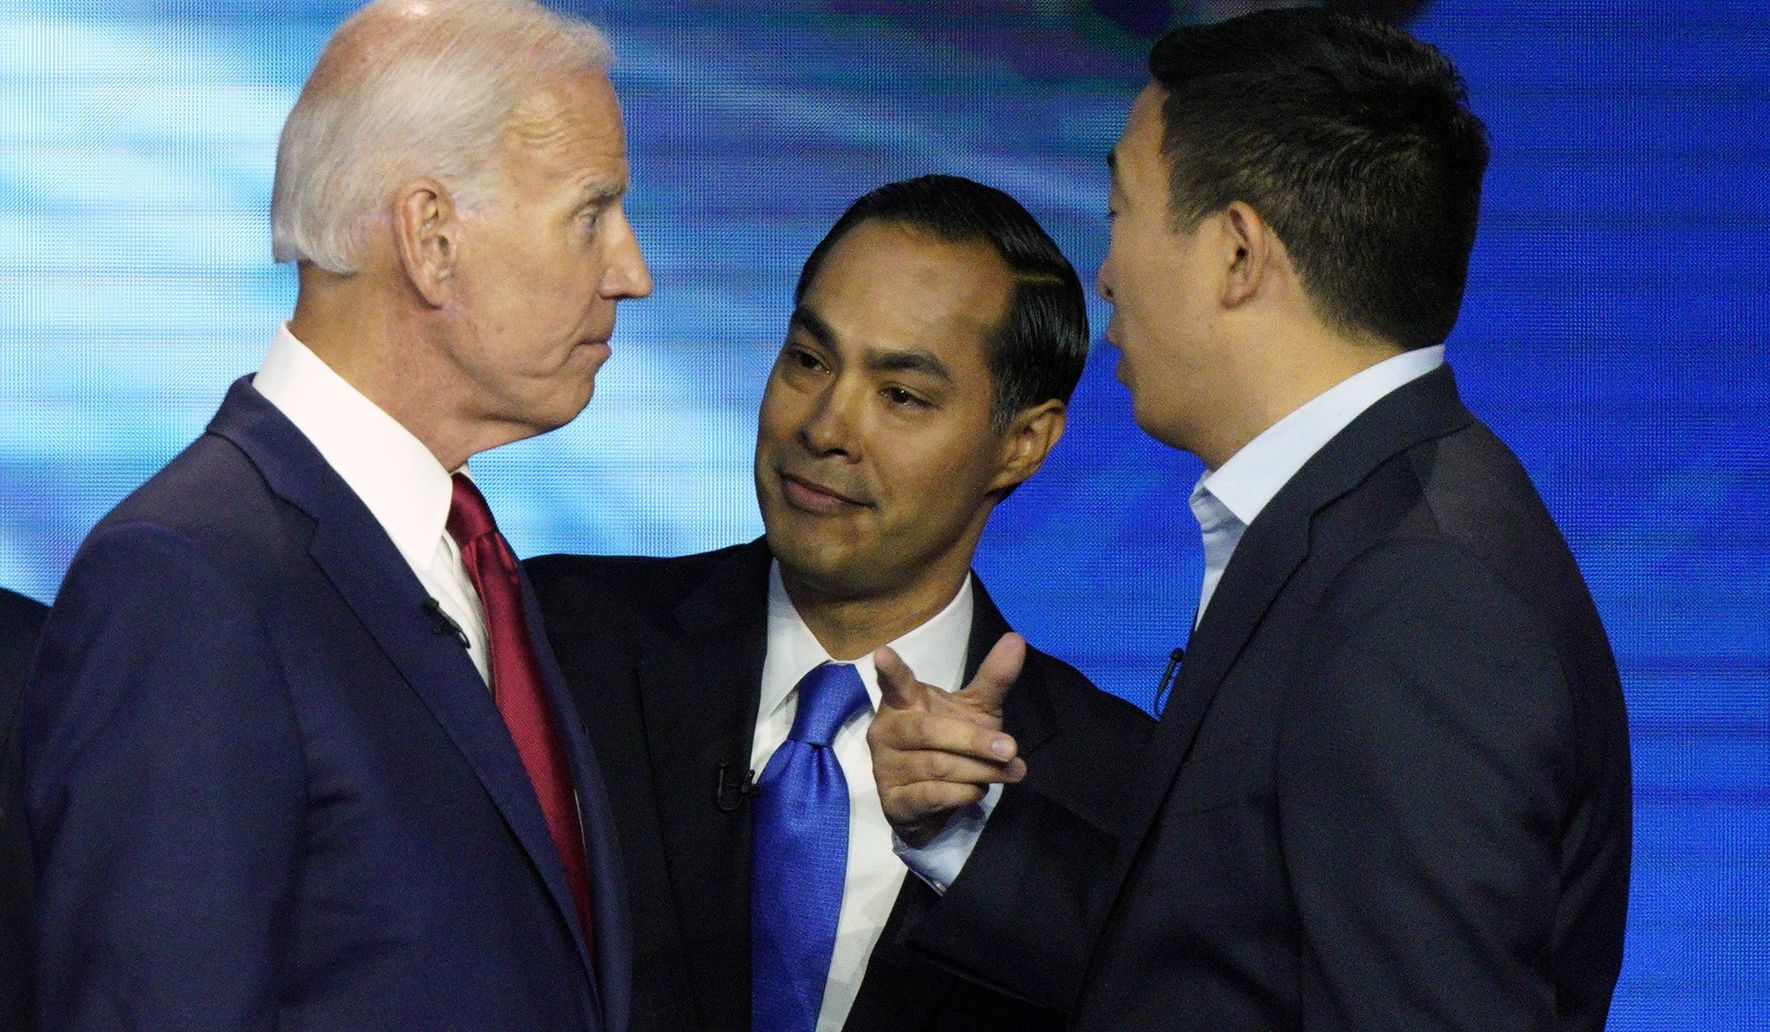 Democrats question Biden's mental fitness after Castro's attack on former VP's memory